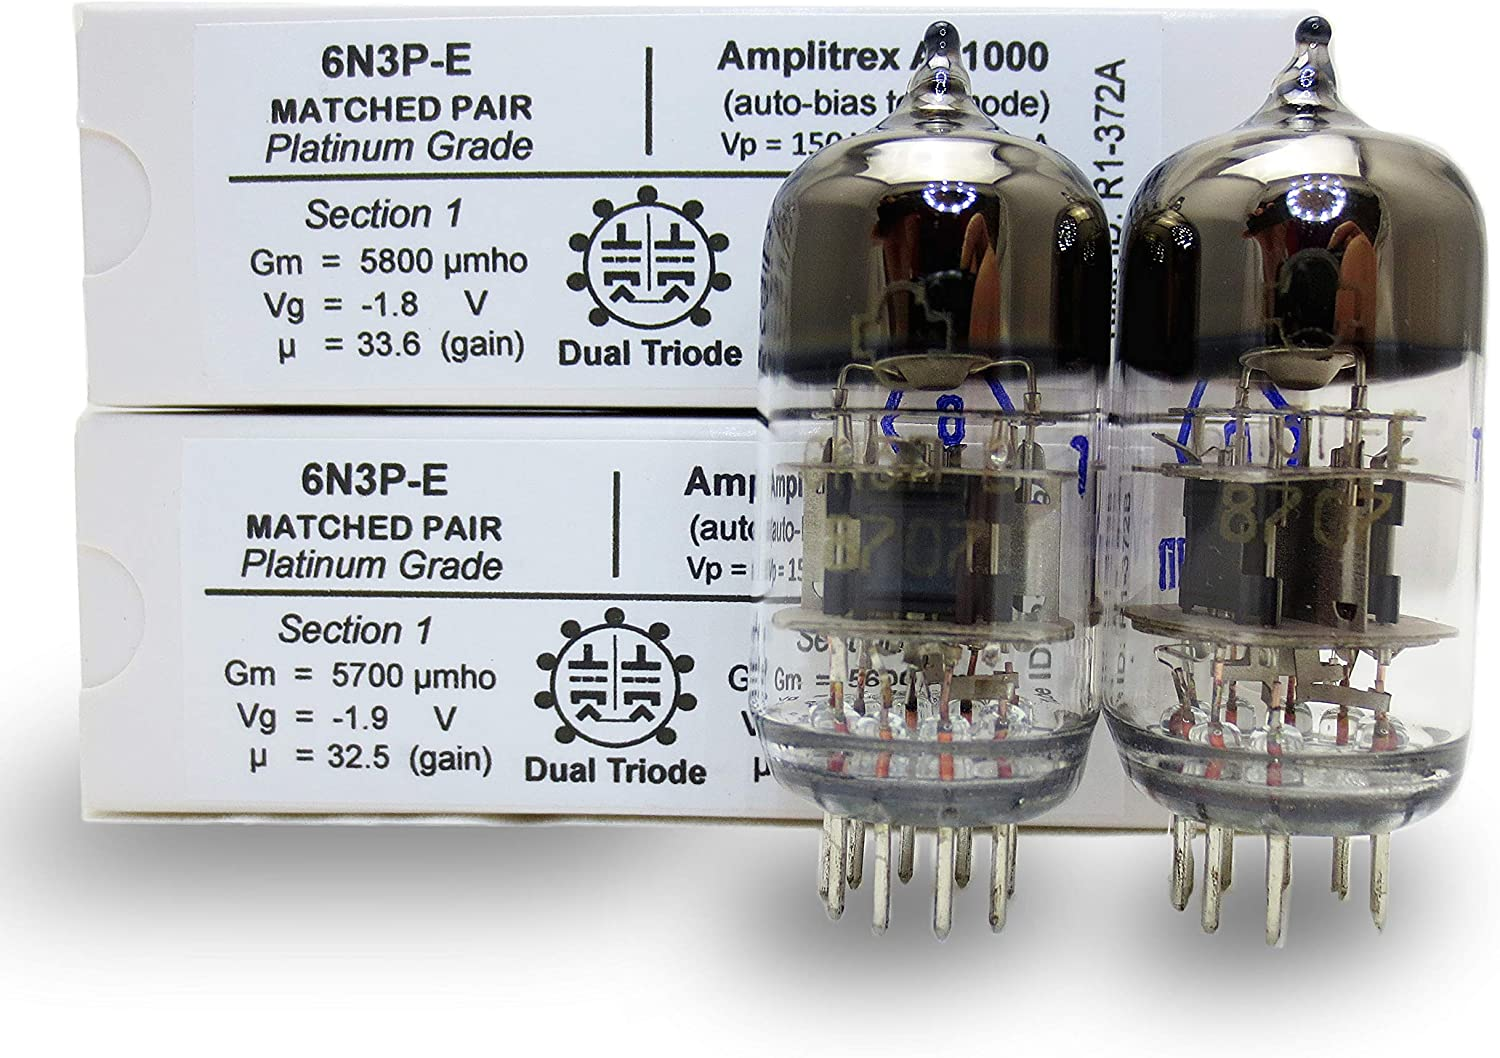 Riverstone Audio, 6N3P-E Matched Pair (2 tubes) - Vintage NOS Russian Vacuum Tubes Replacement for 6N3 / 6N3P / 5670 / 5670W / 396A / 2C51 - Amplitrex Tested/Matched - Platinum Grade Pair (6N3P-E)